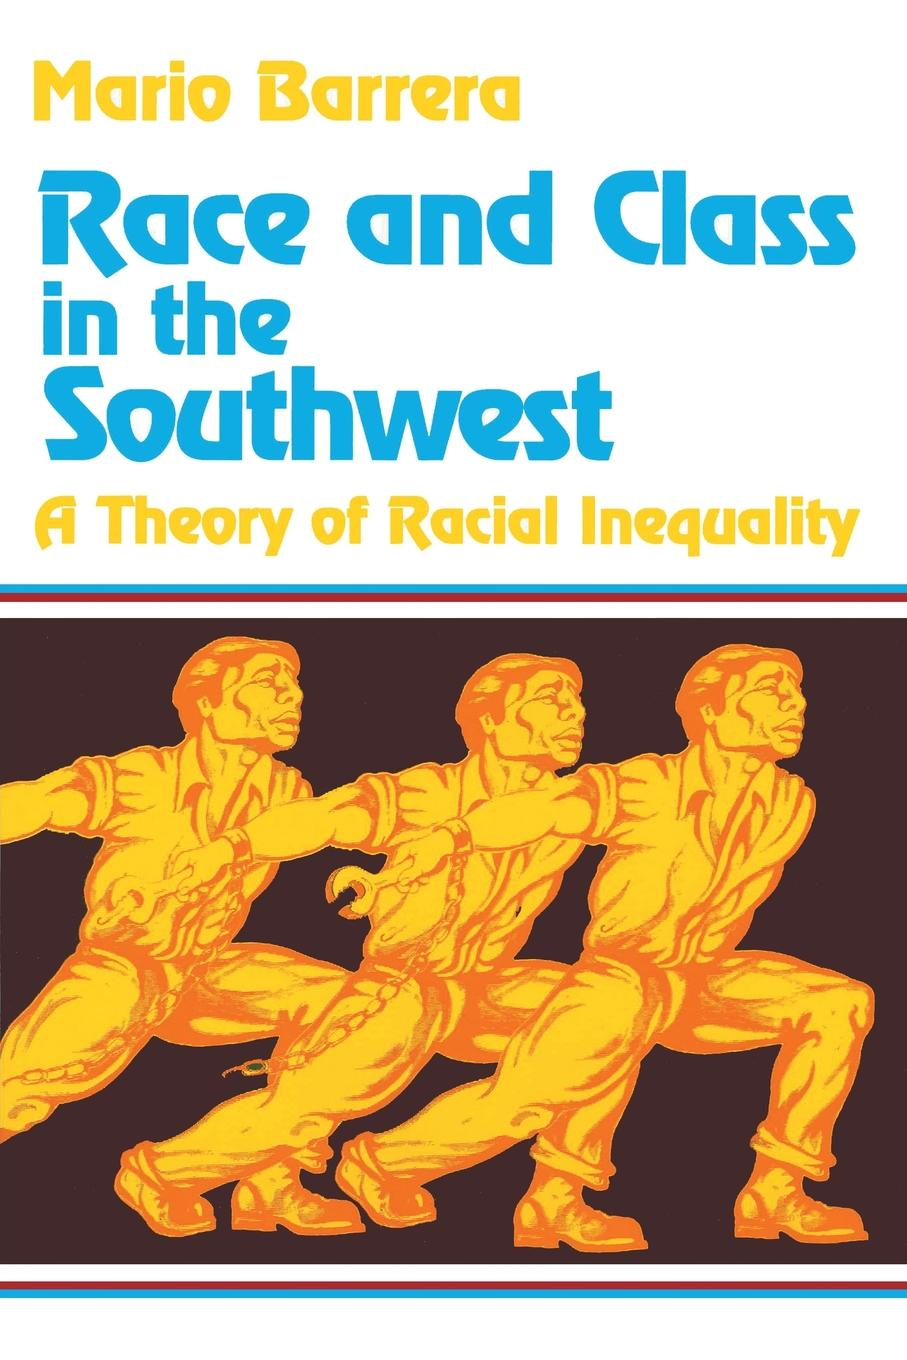 Mario Barrera Race and Class in the Southwest. A Theory of Racial Inequality how public policy impacts racial inequality